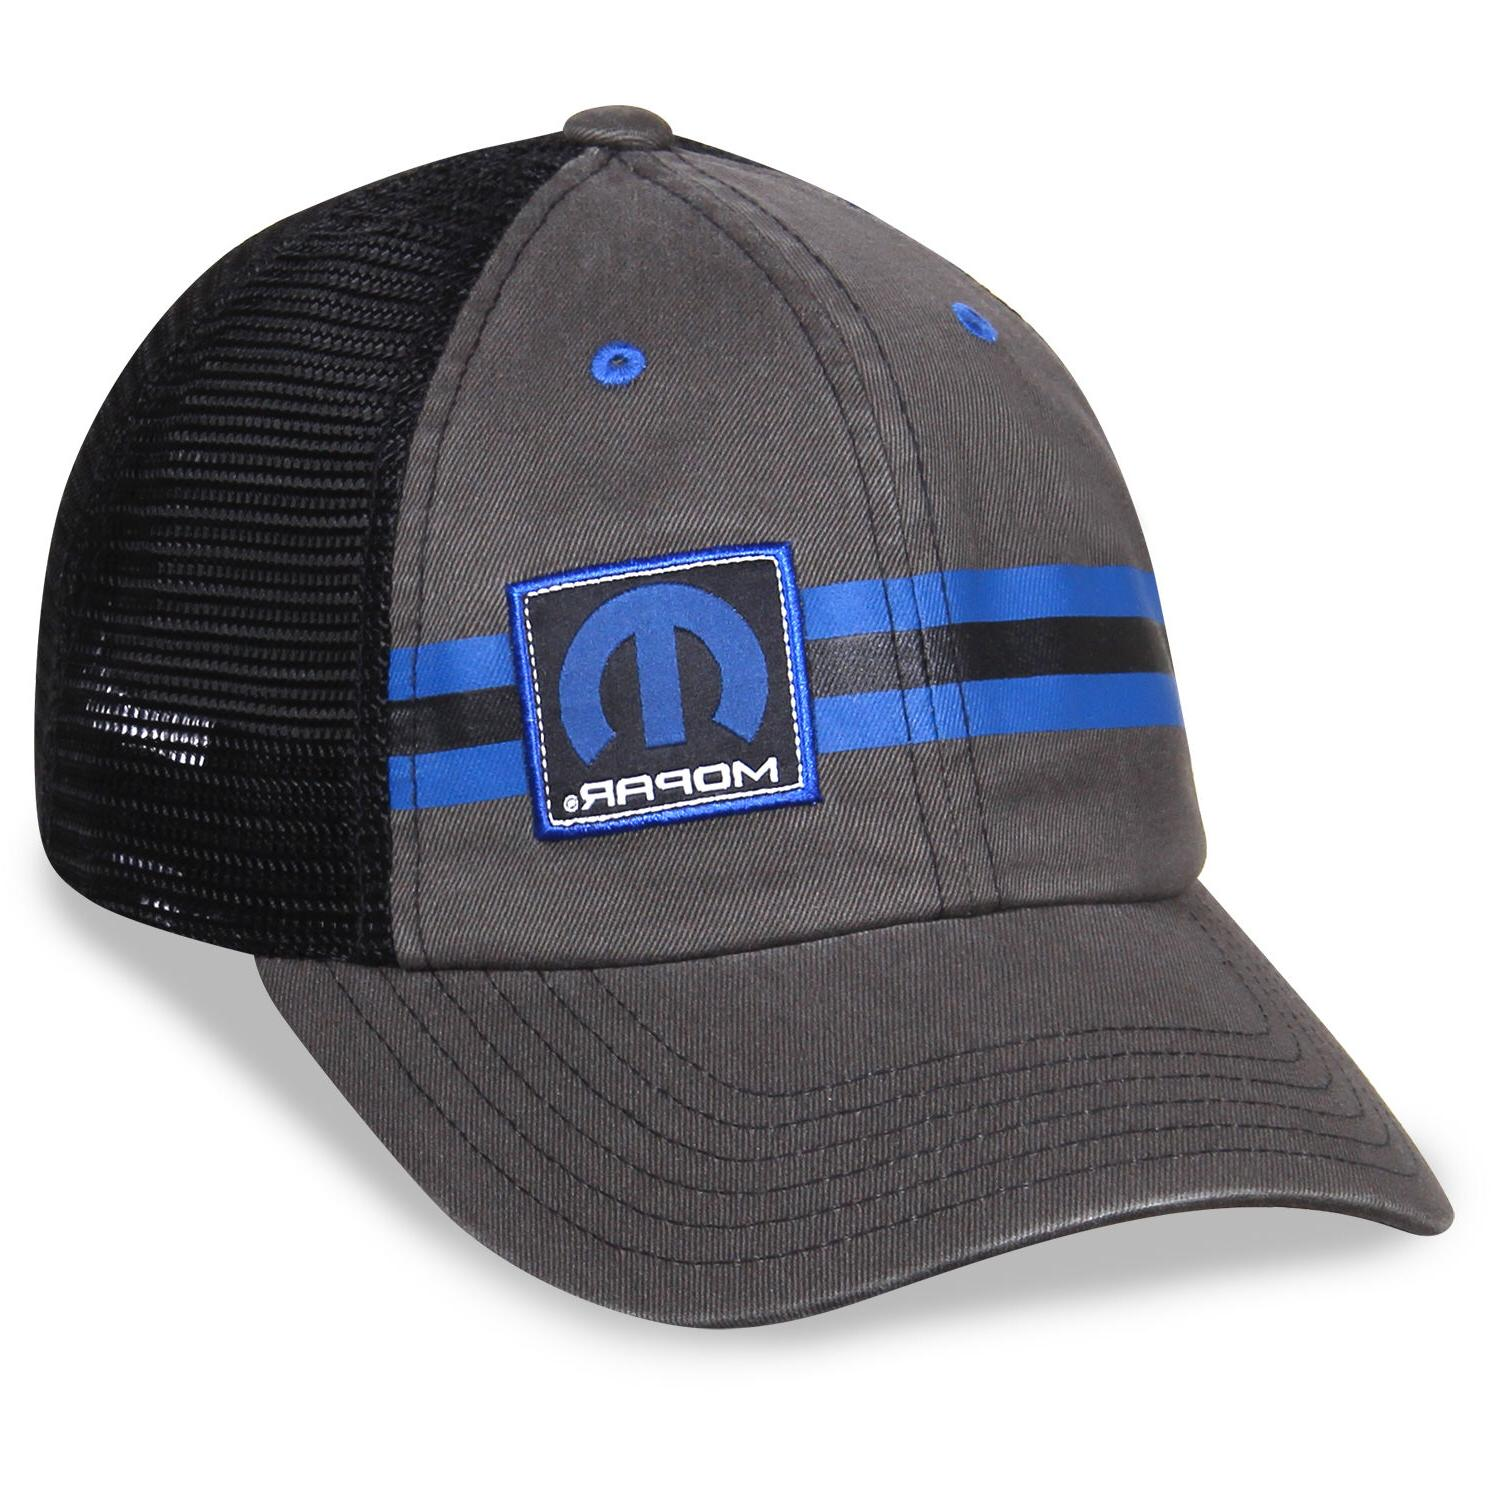 Mopar Striped Gray Black Hat Trucker Style, Unstructured